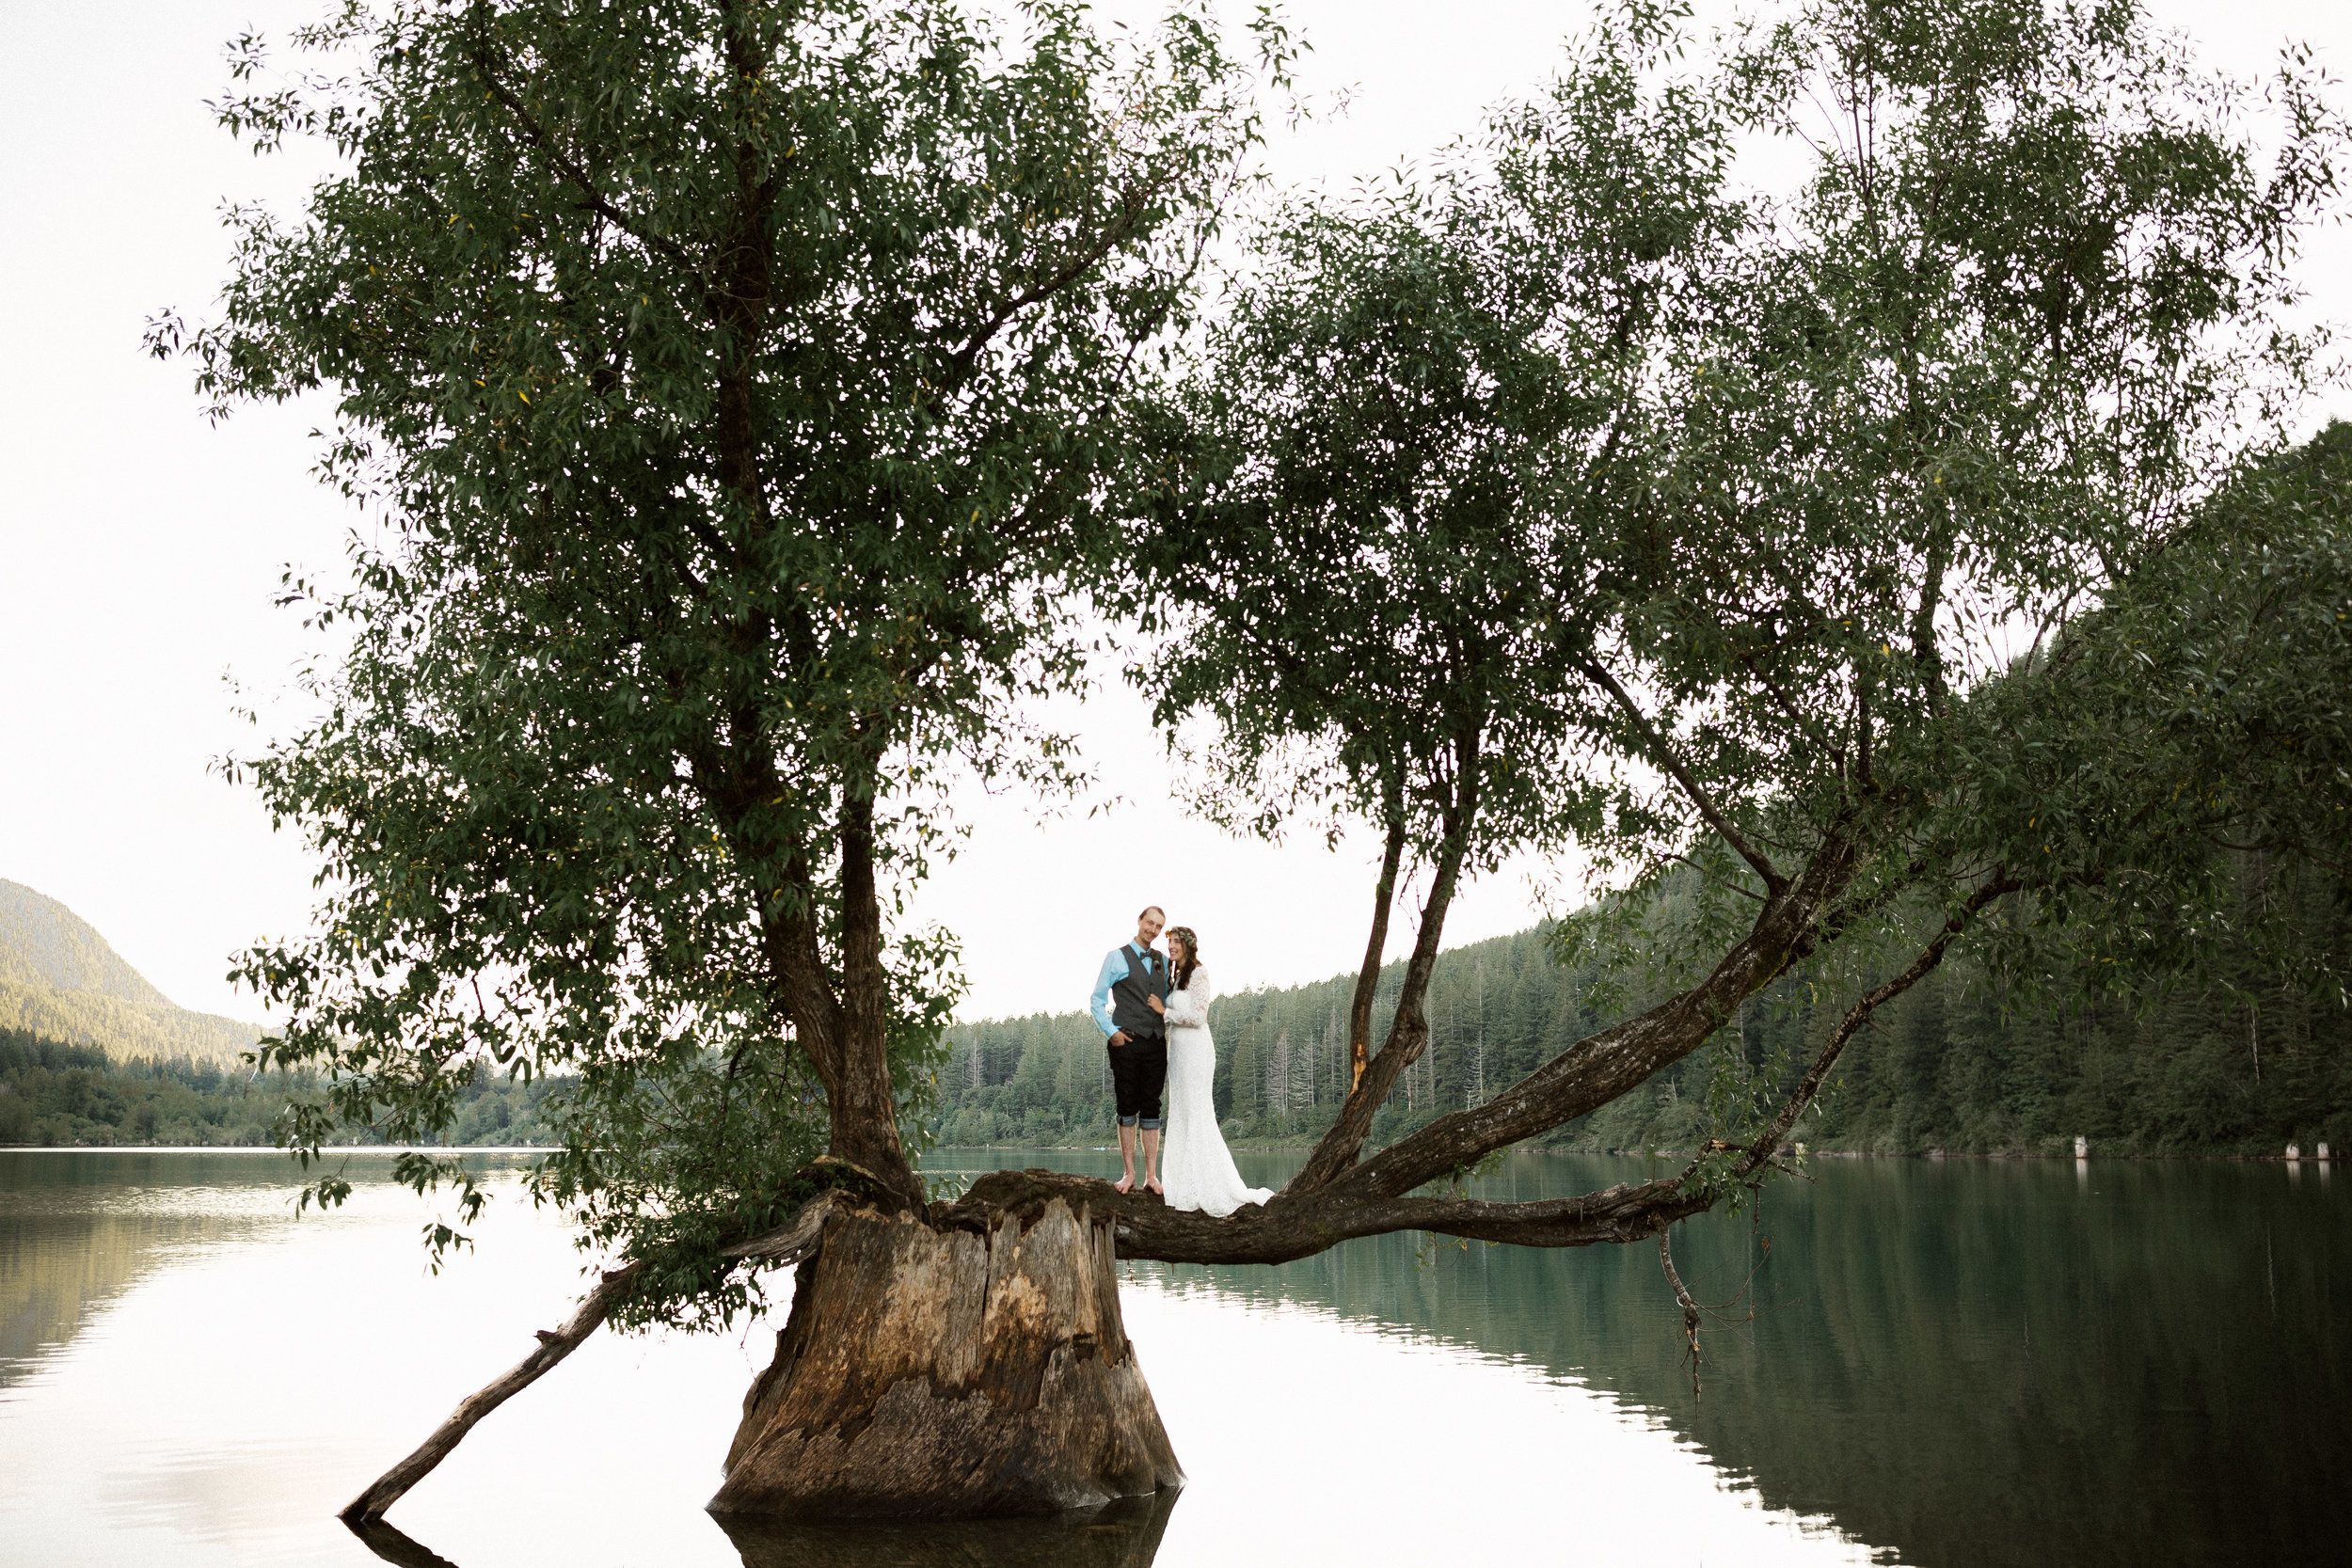 Apple Brides Magazine - Simply Sweet Boho Chic Wedding at Rattlesnake Lake